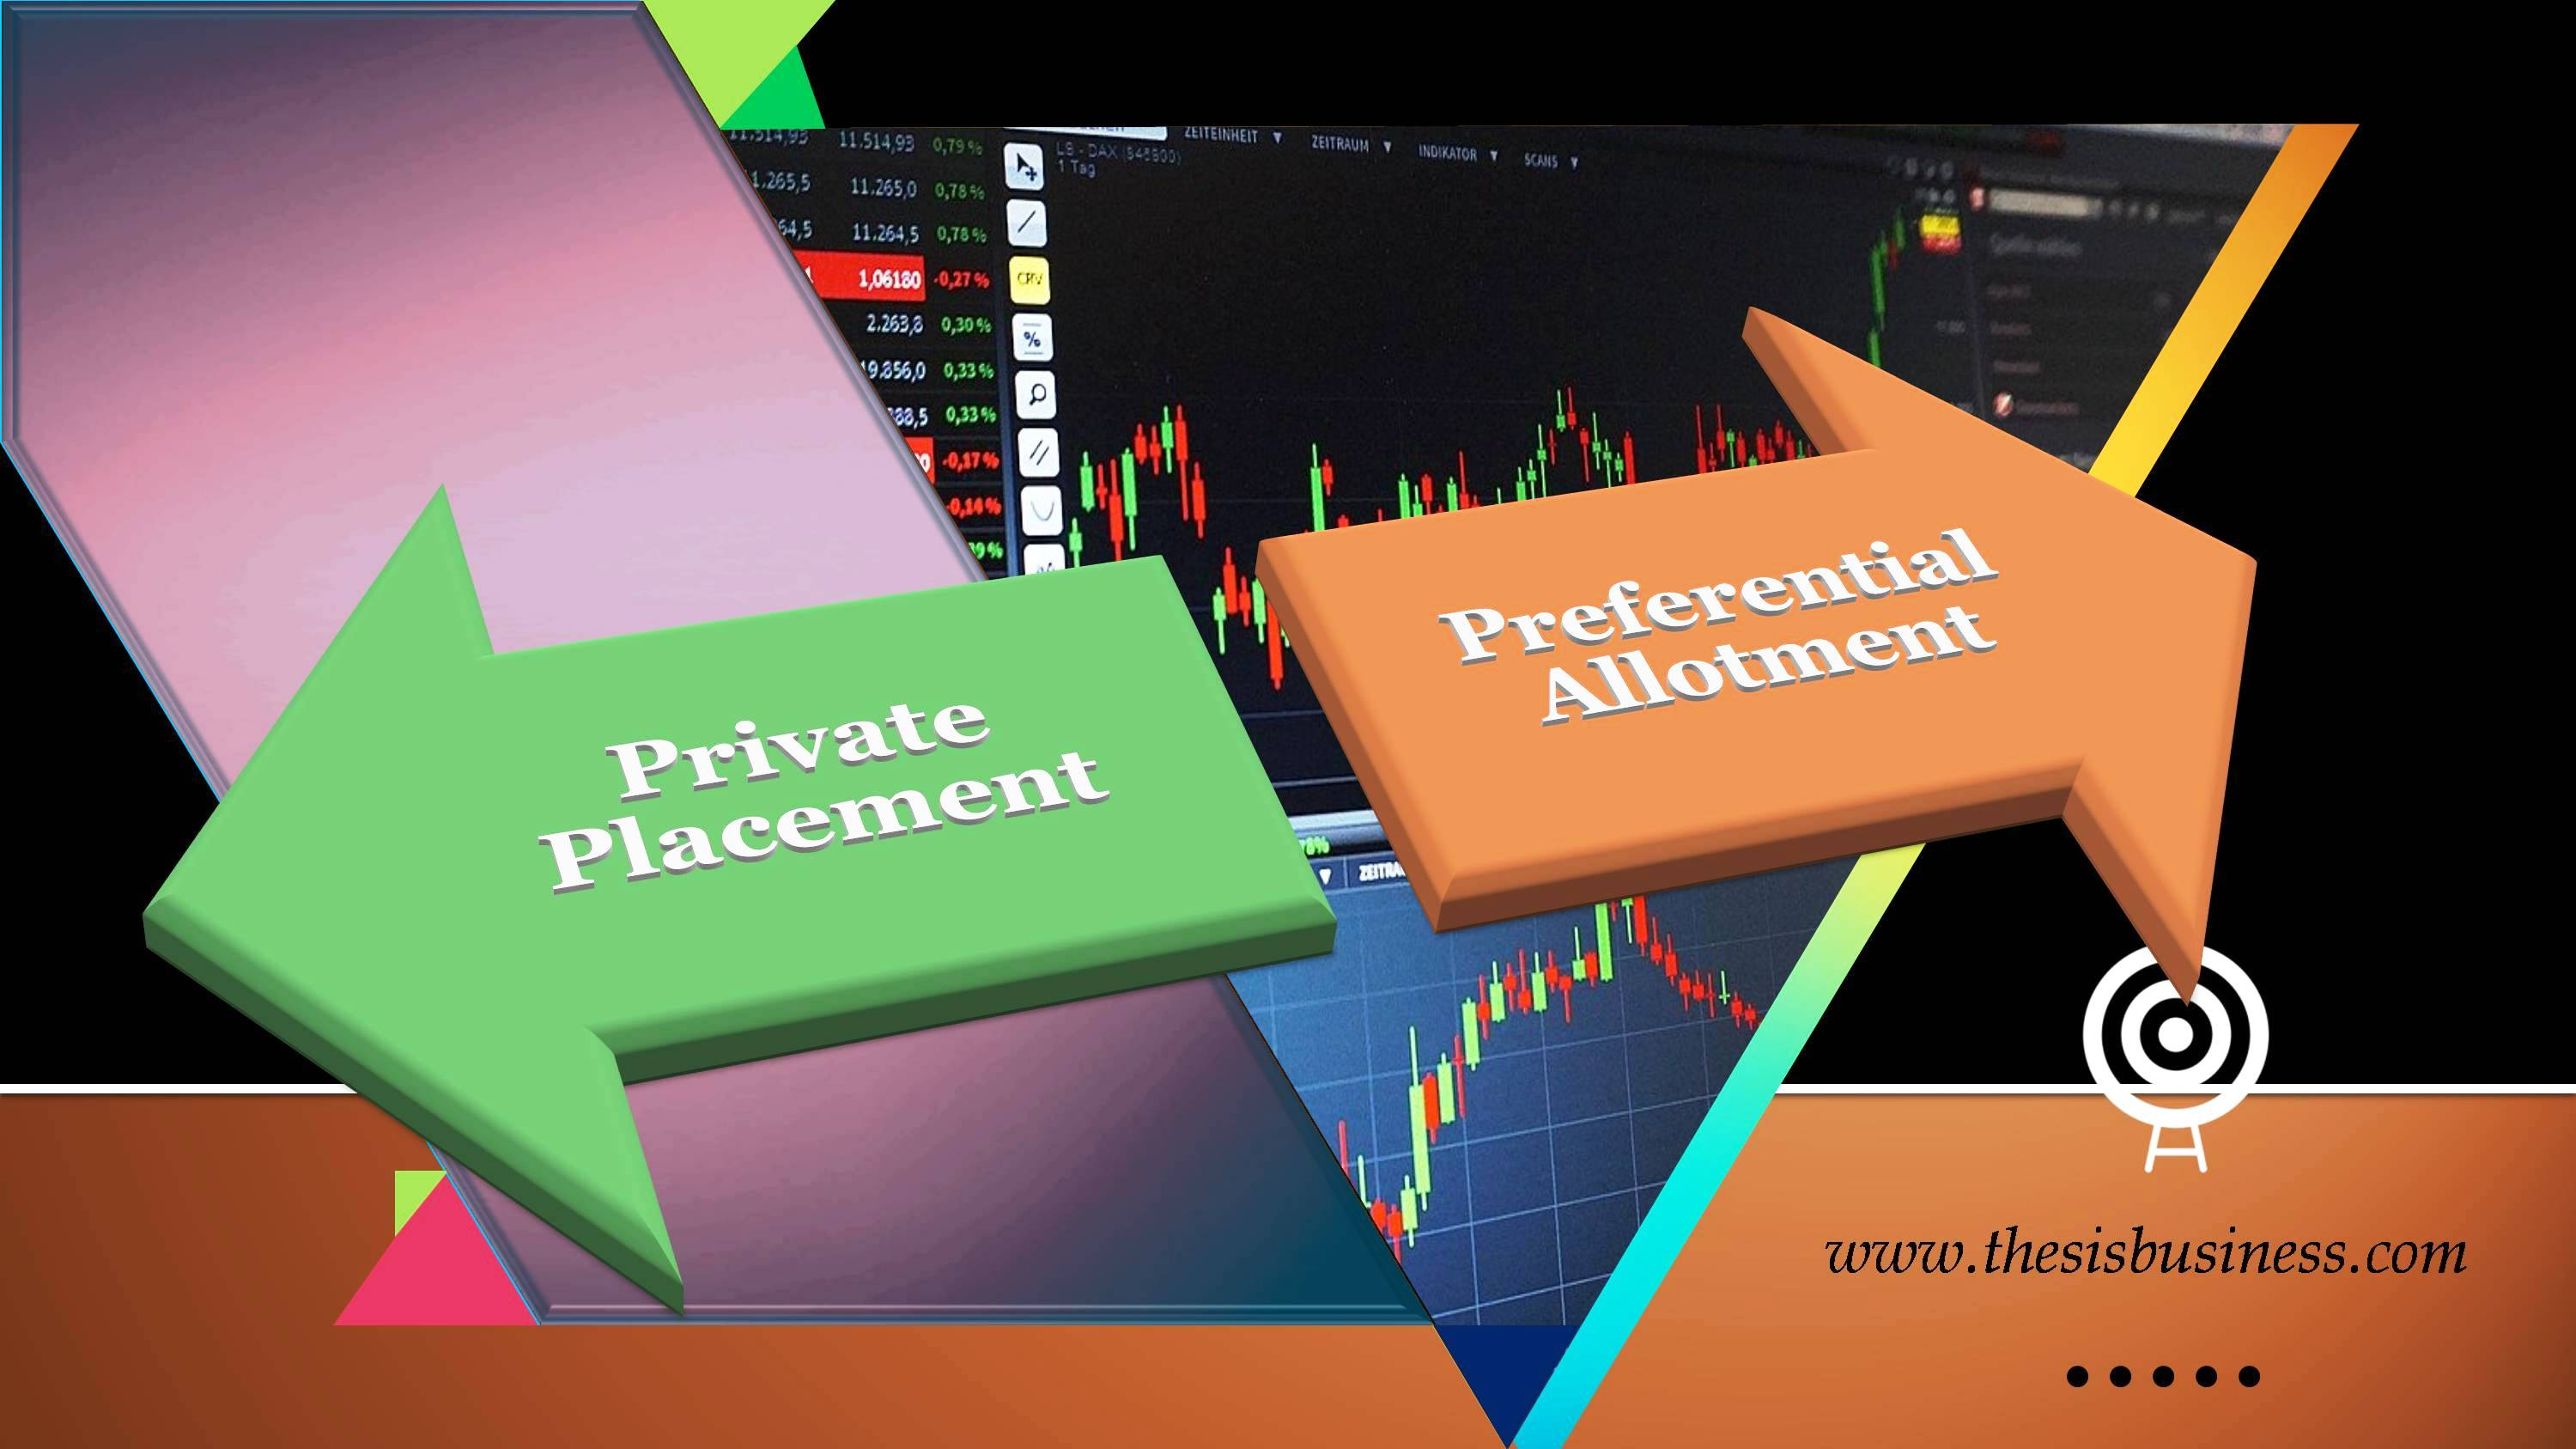 difference between private placement and preferential allotment